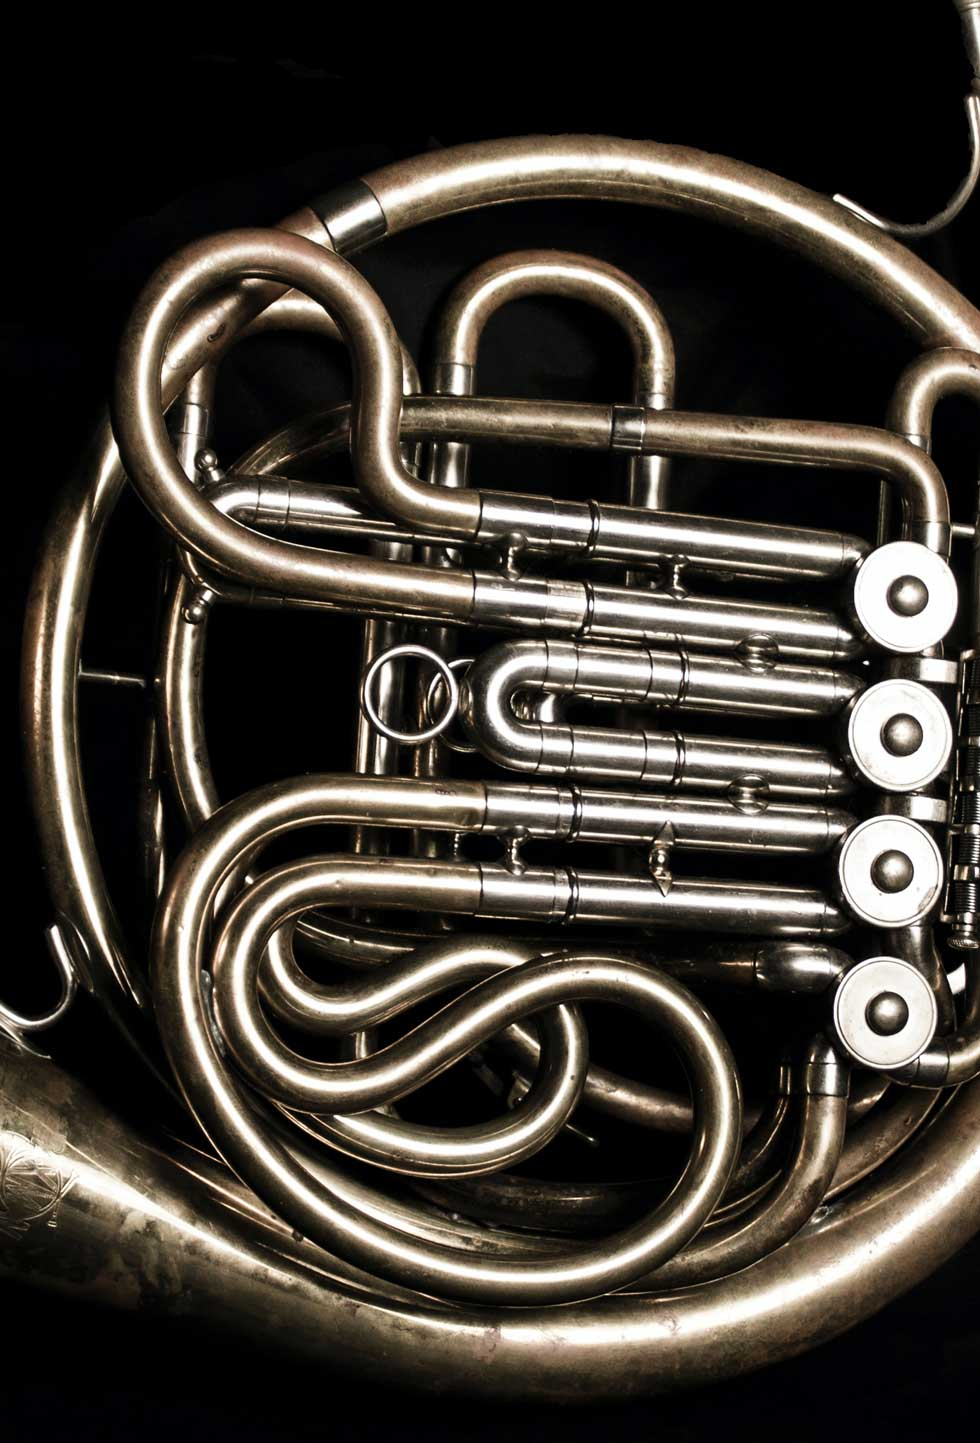 french horn on black background